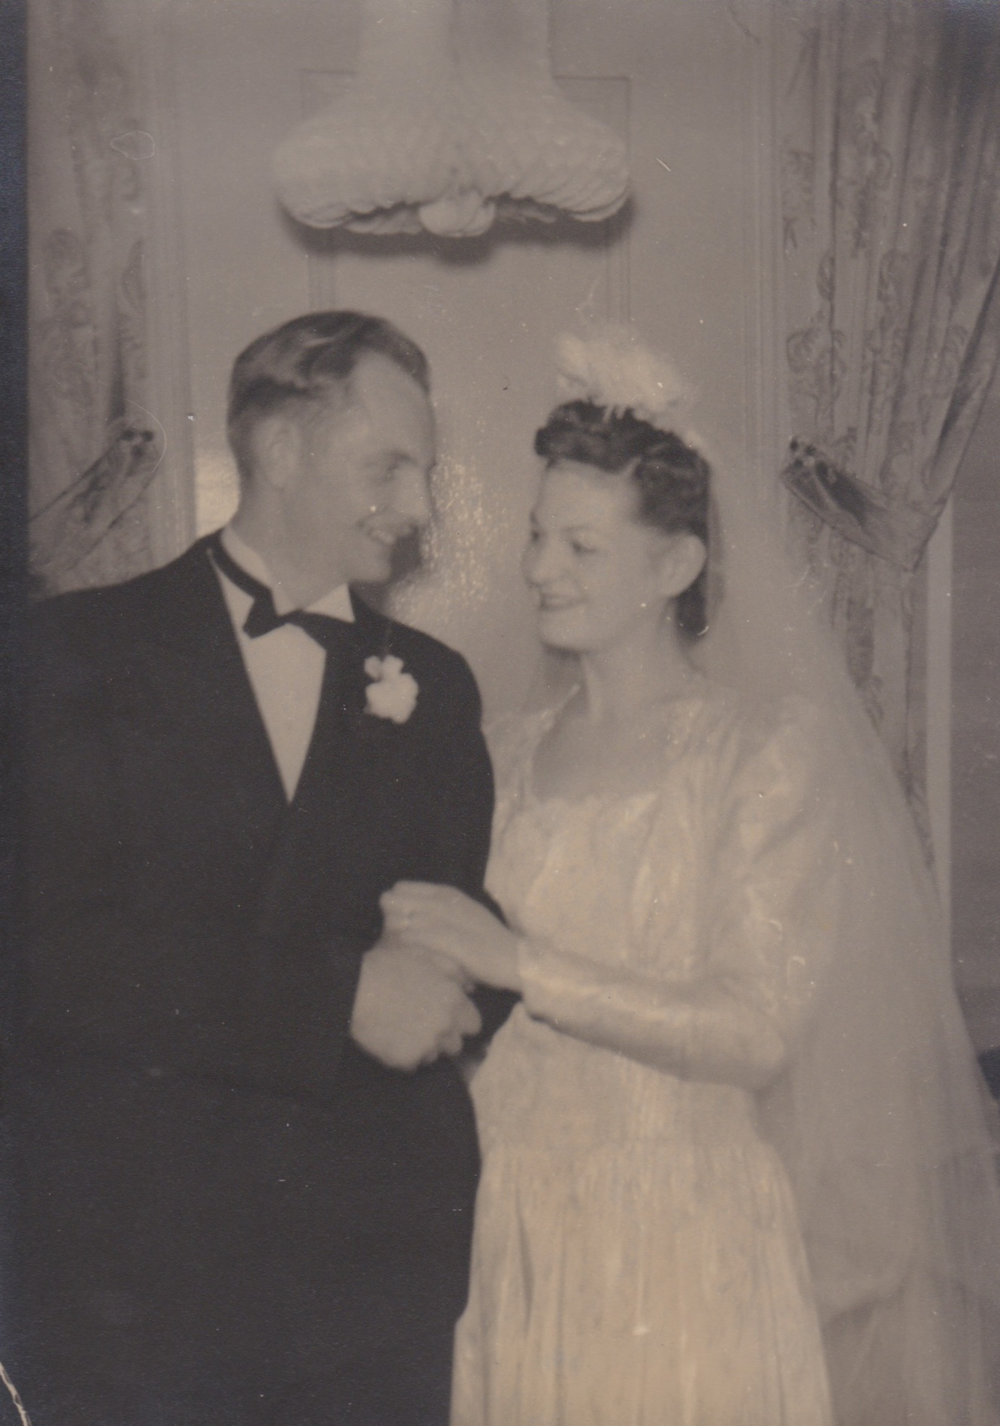 Wilbur and eleanor on their wedding day, 1942.